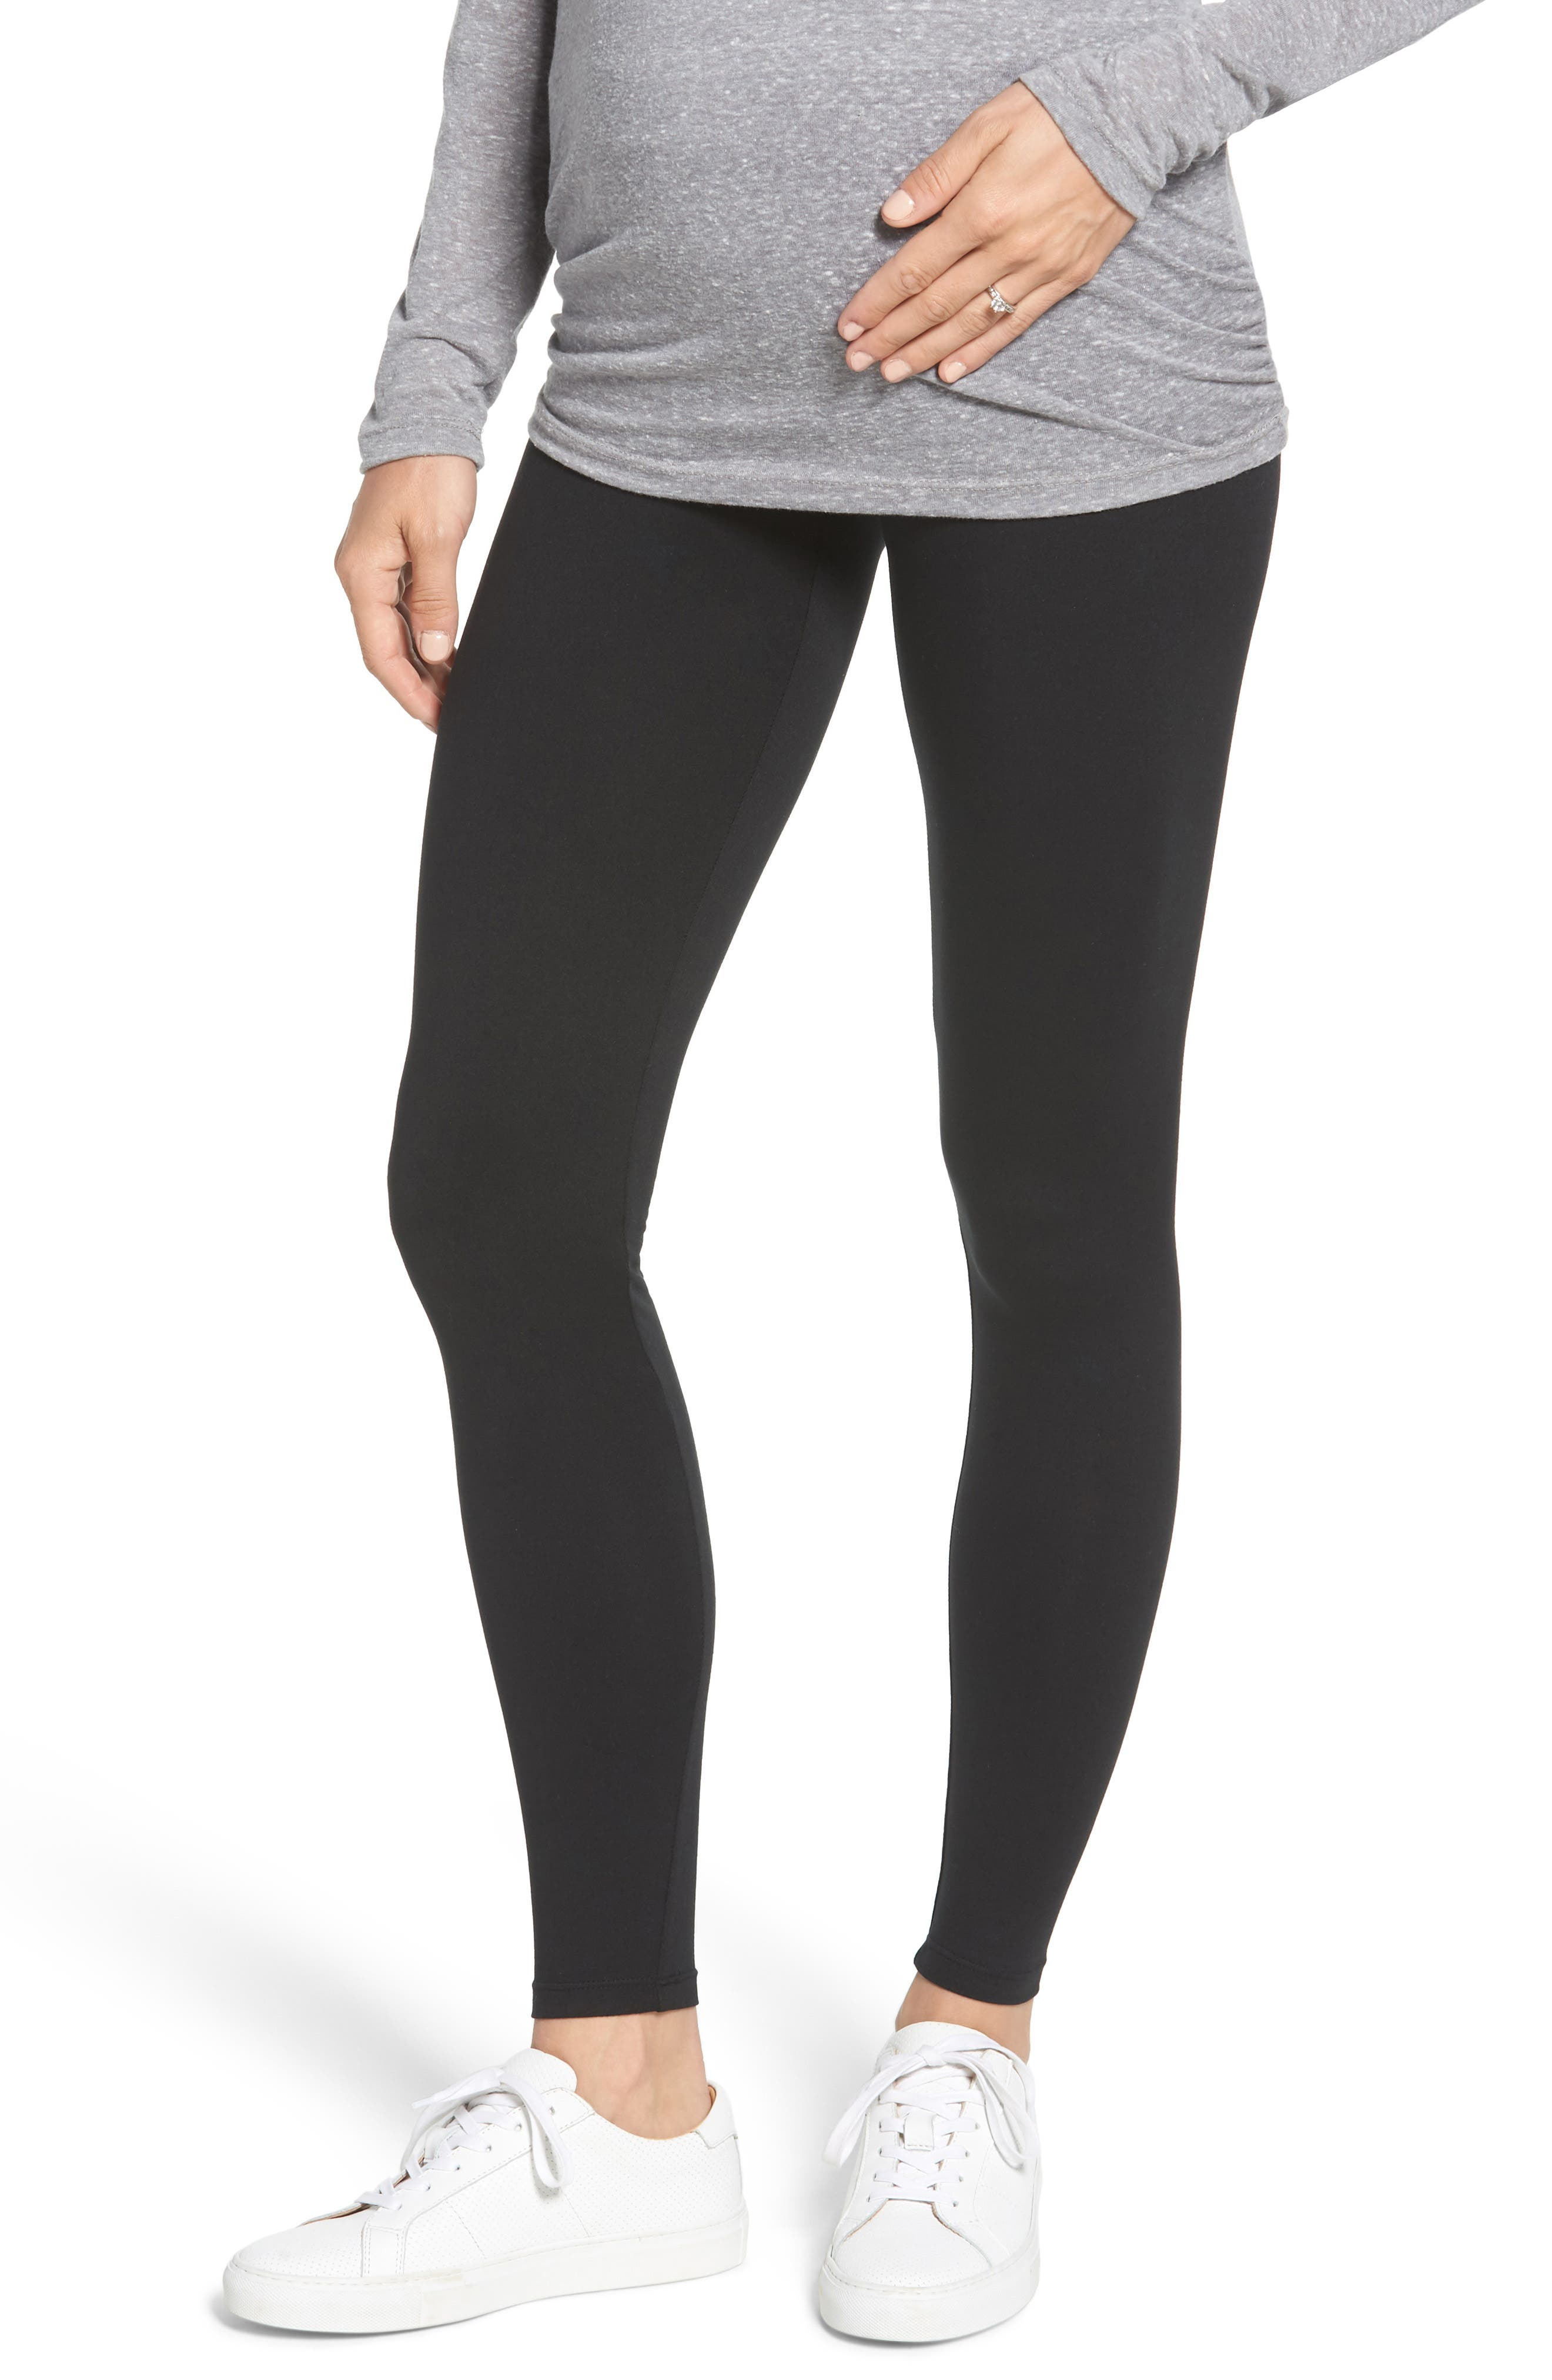 Under Belly Maternity Leggings,                         Main,                         color, 006